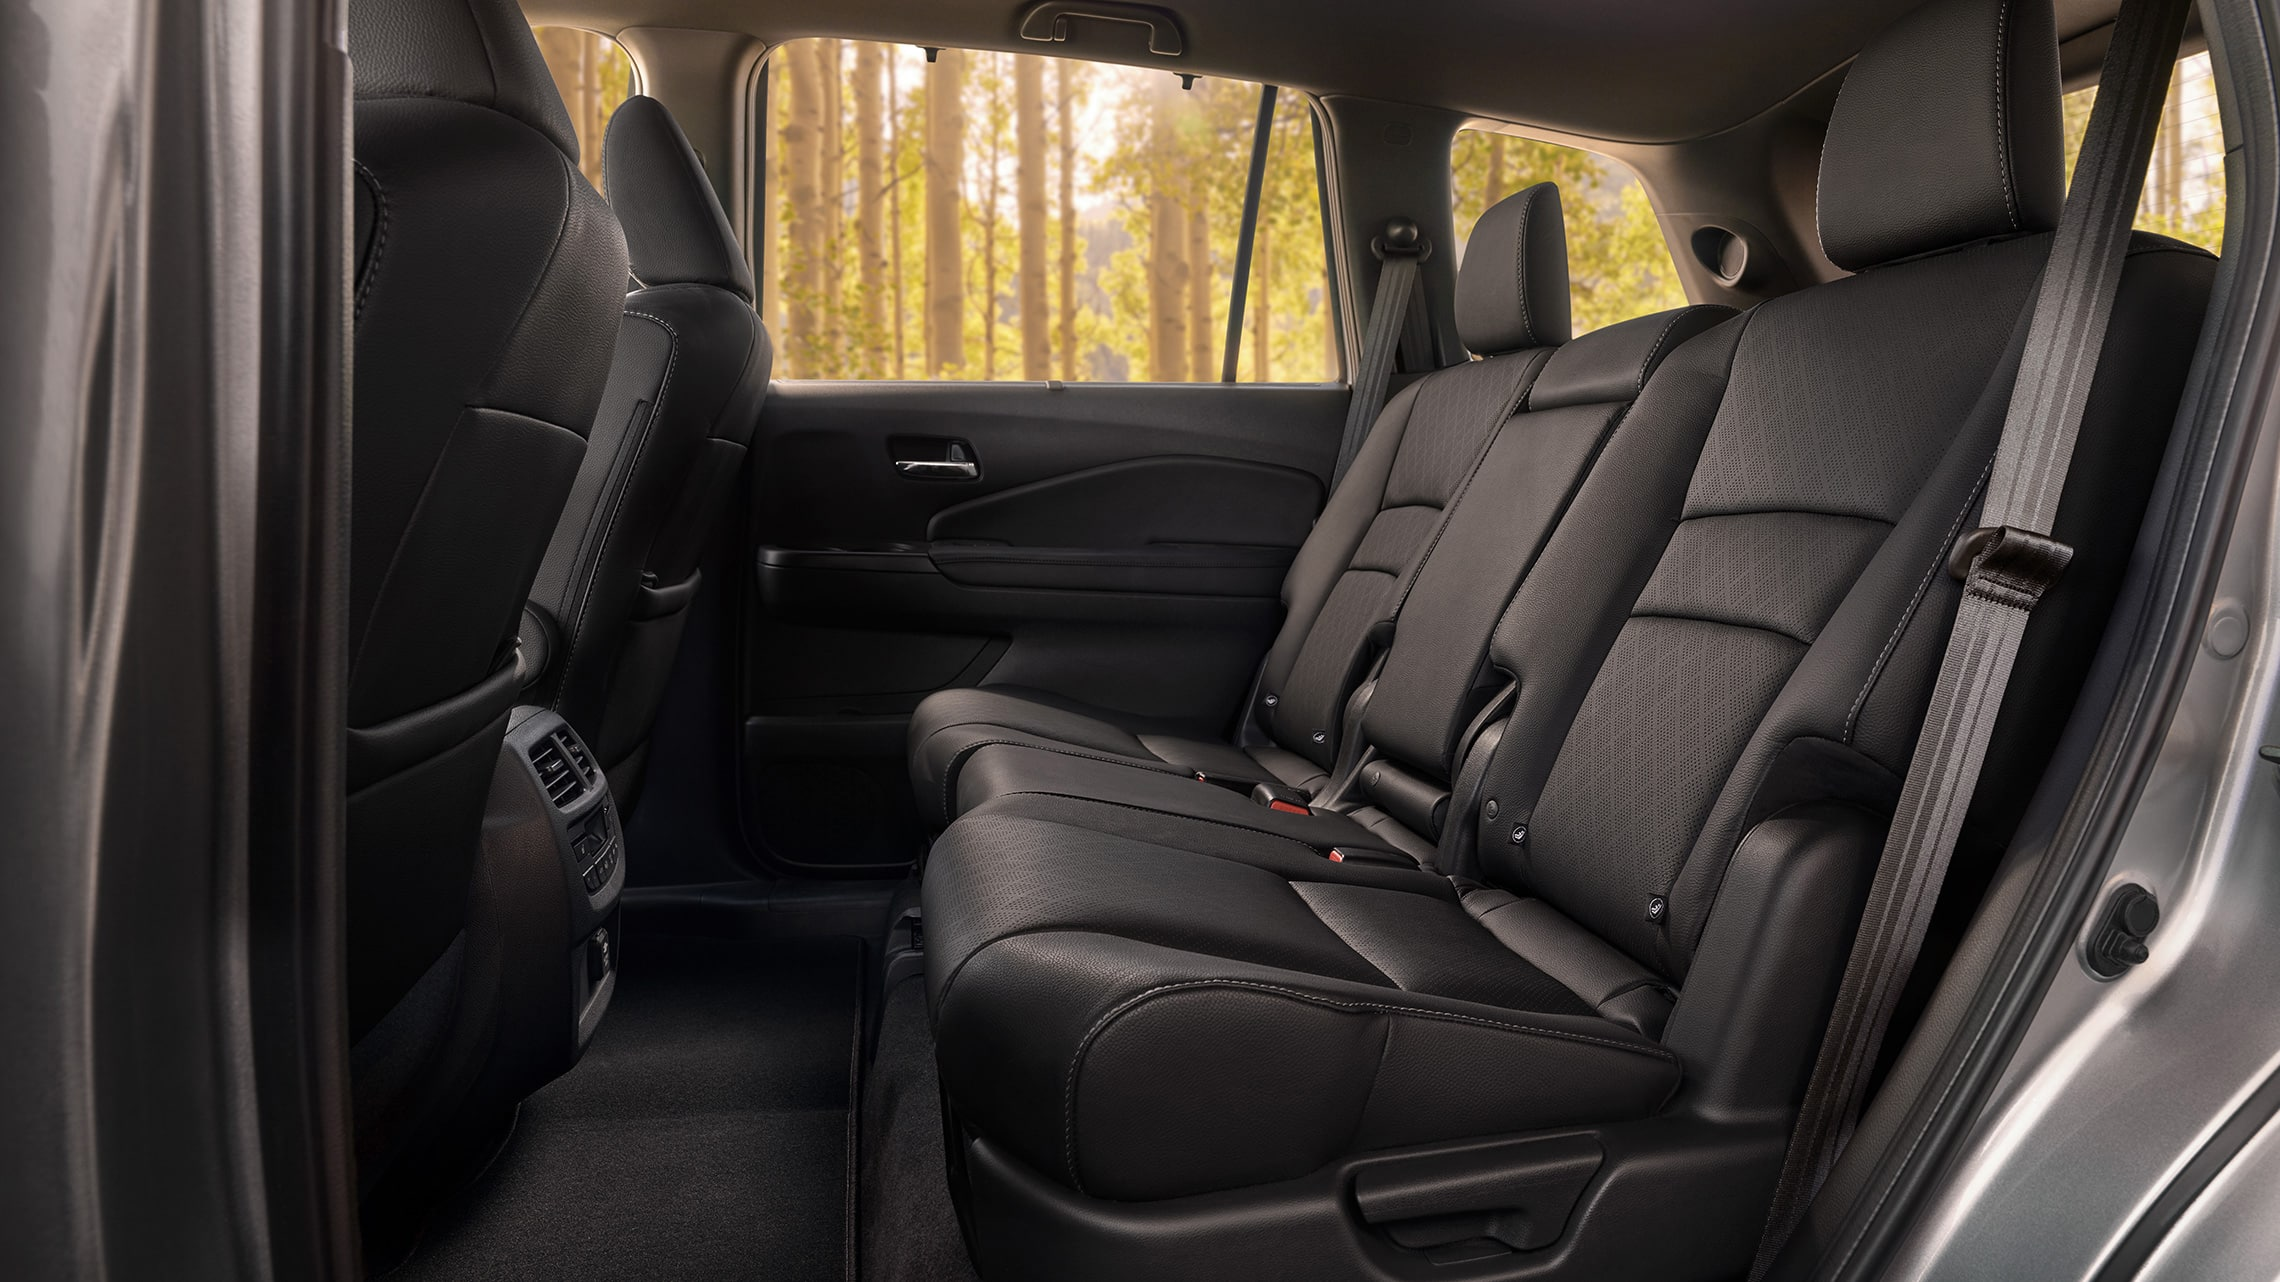 Interior trasero de la Honda Passport Elite 2020 en Black Leather mostrando asientos de segunda fila espaciosos.